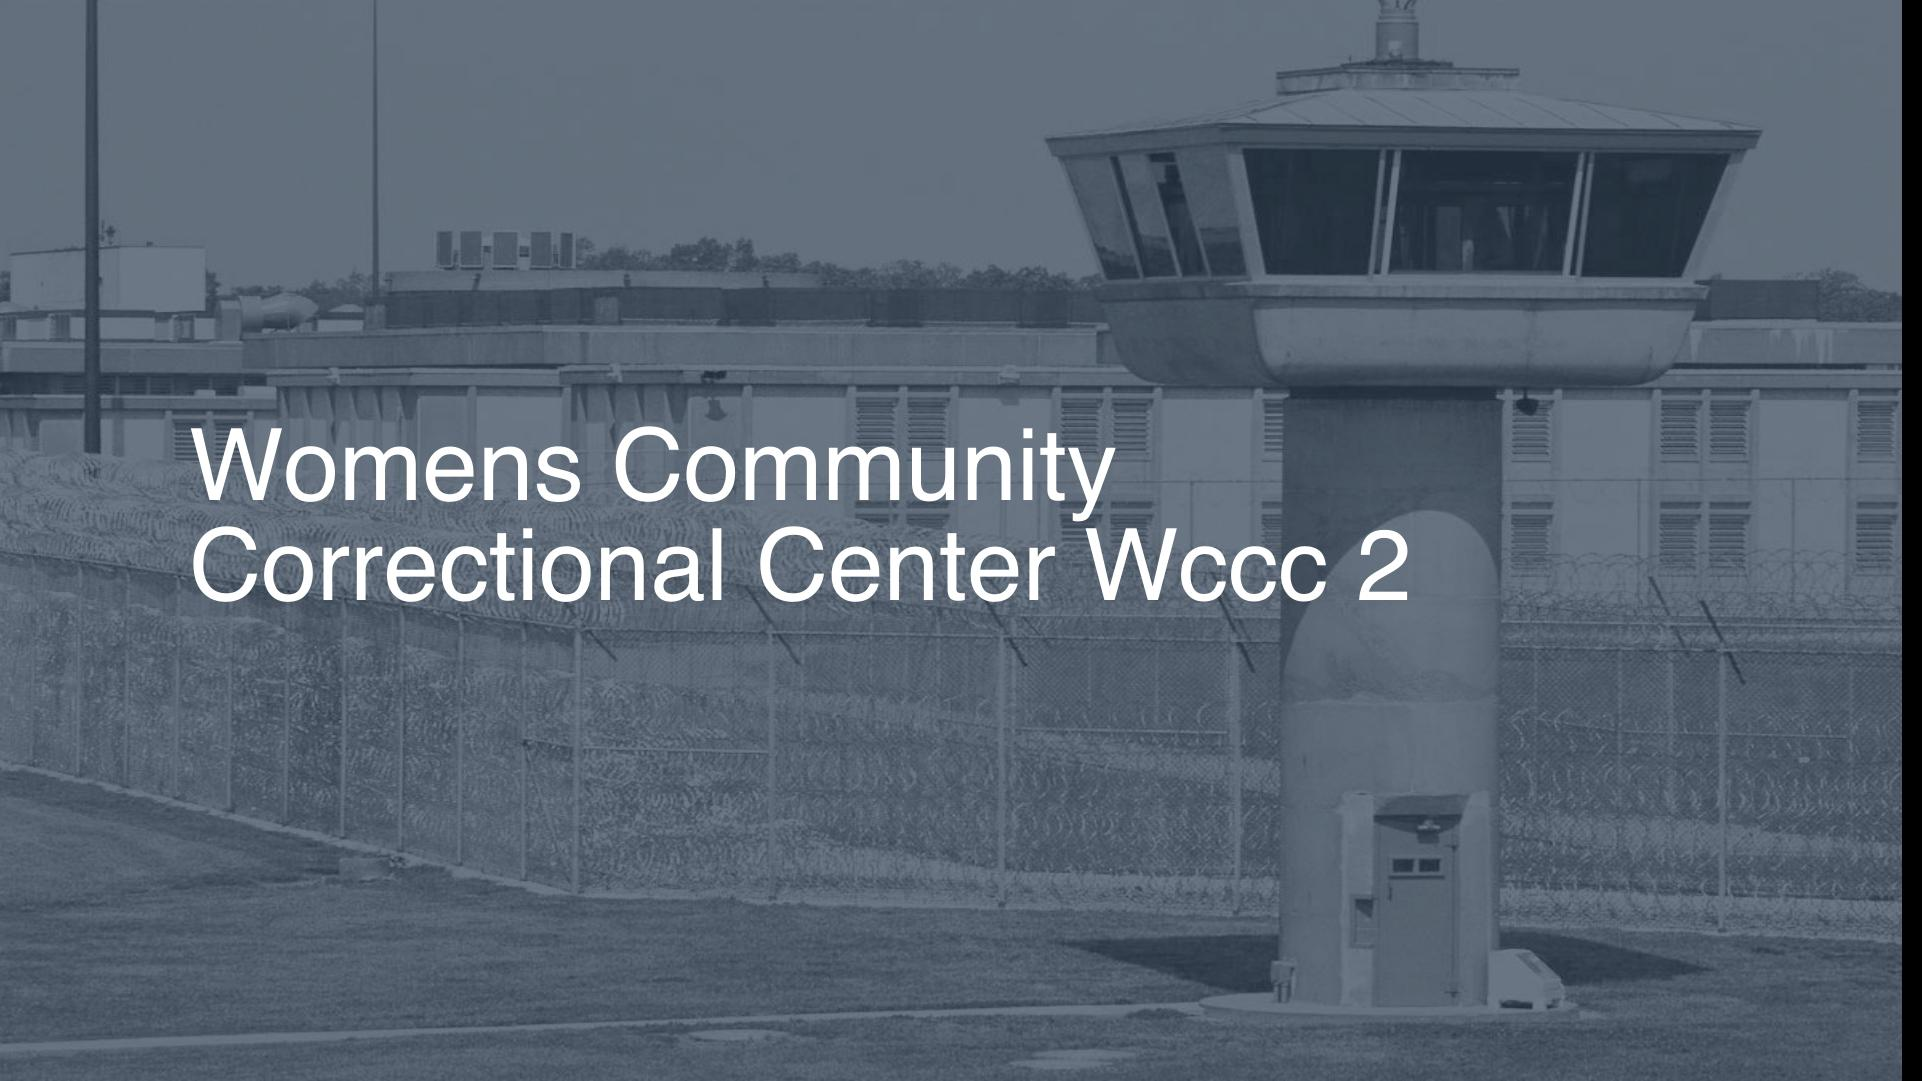 Women's Community Correctional Center (WCCC) correctional facility picture